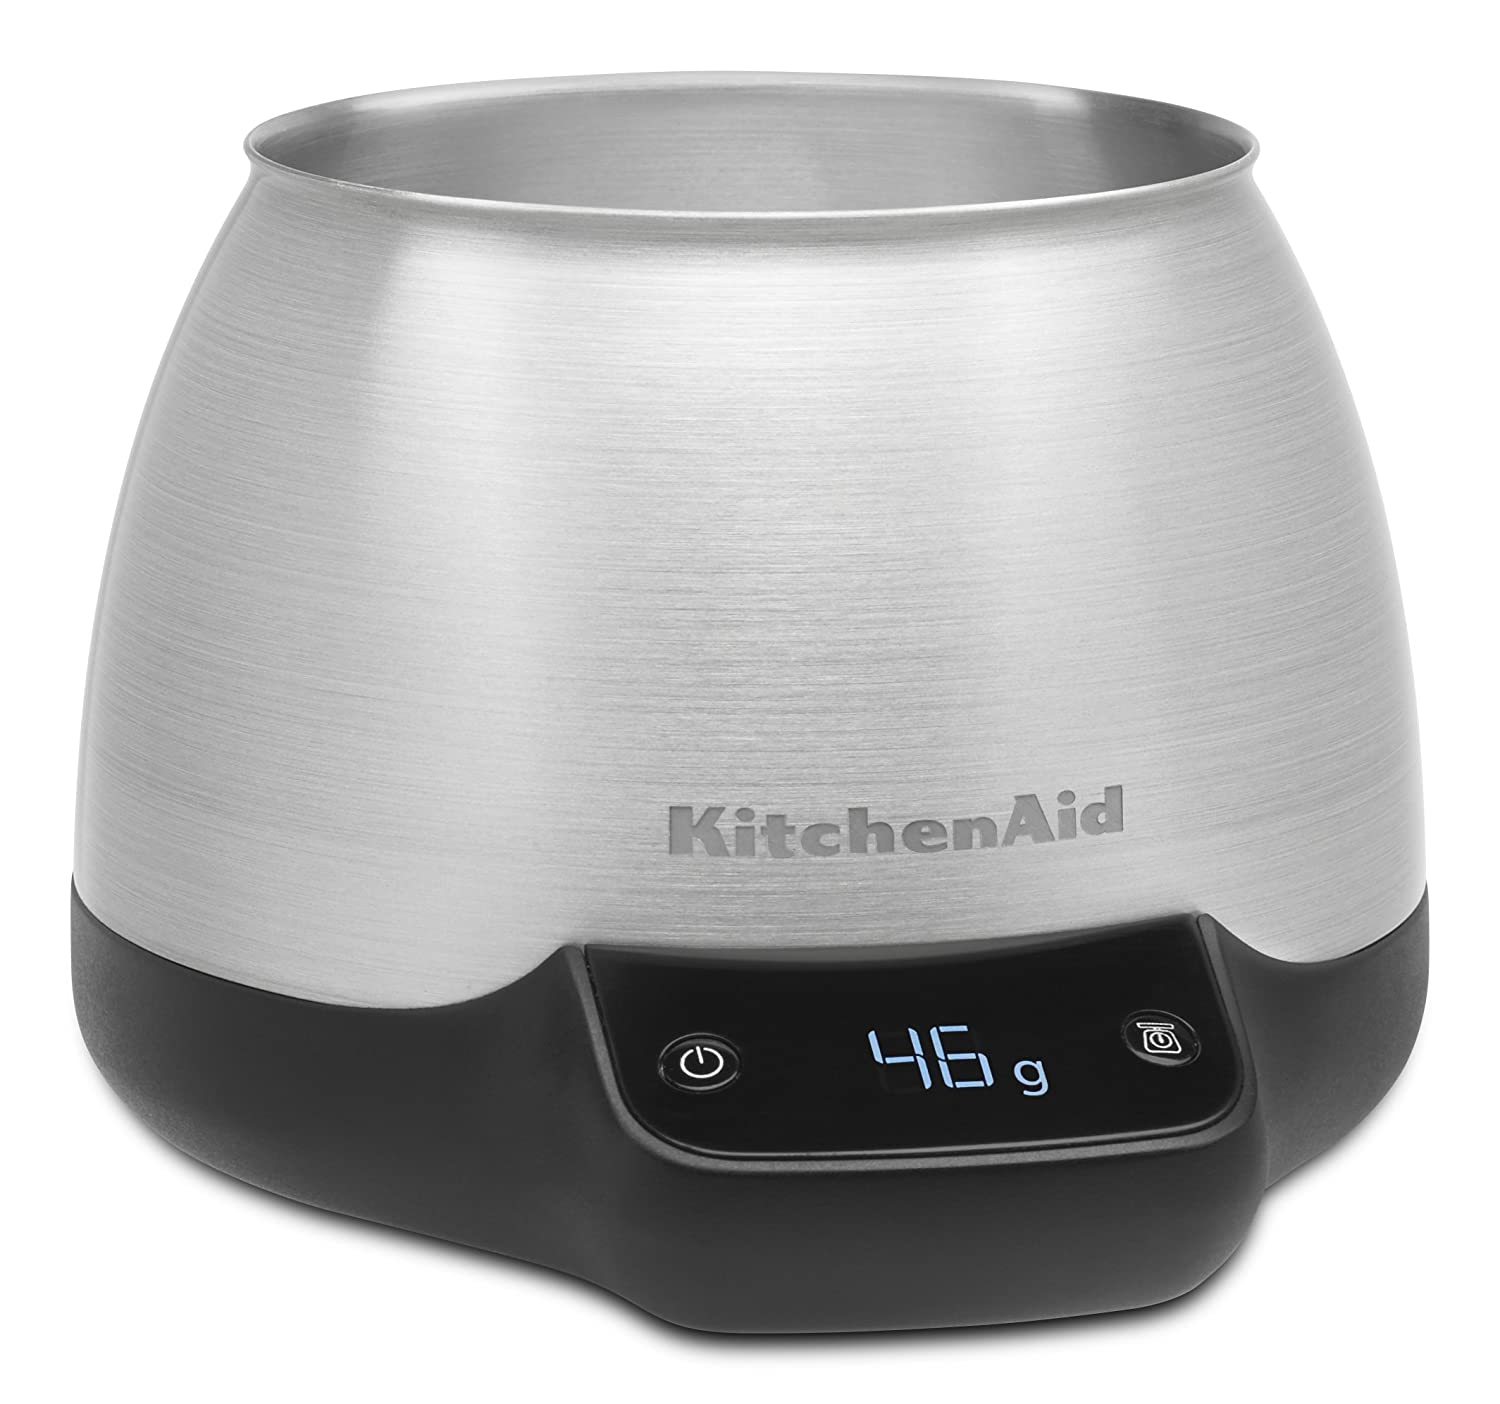 KitchenAid KCG0799SX Digital Scale Jar Burr Grinder Accessory-Brushed Stainless Steel